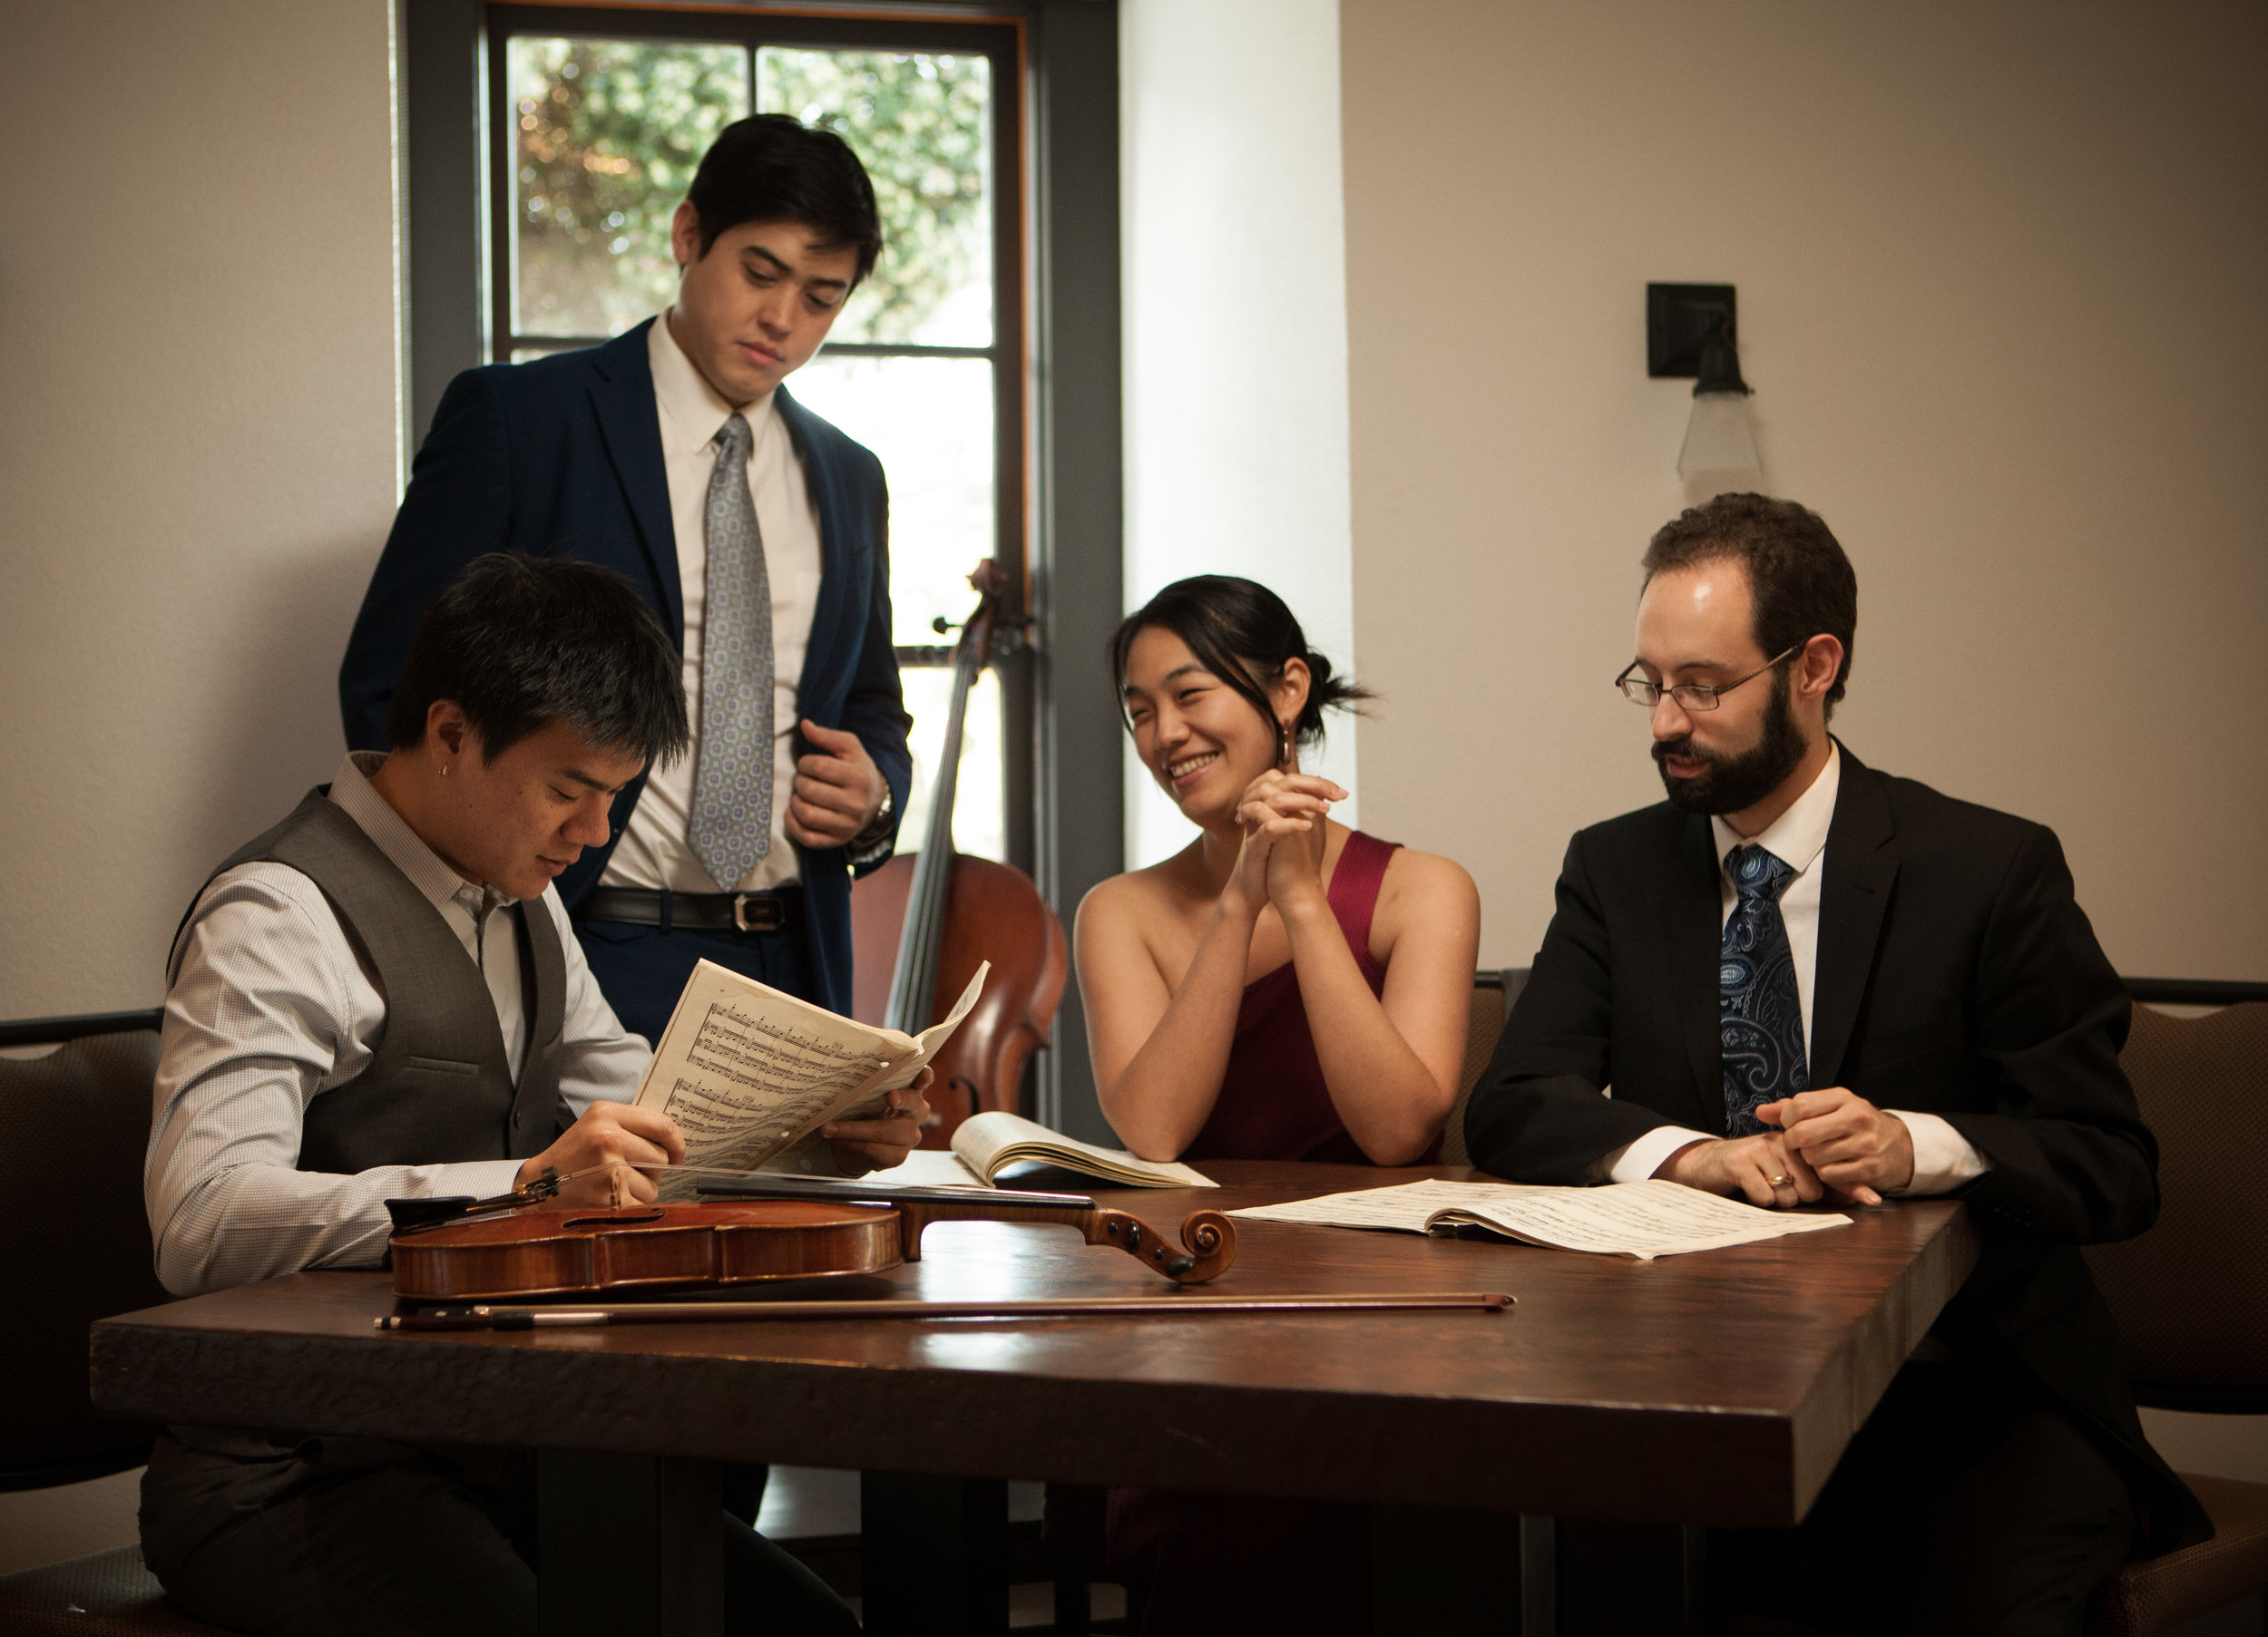 The Telegraph Quartet recently won the 2016 Naumburg Chamber Music Competition, a prize that helped launch the careers of groups including the Pacifica, Brentano and Emerson string quartets and the Eroica Trio. The prize carries with it a performance at Carnegie Hall / Weill Recital Hall and a commissioned work by esteemed American composer Robert Sirota.    The quartet also won the prestigious Grand Prize in the 2014 Fischoff Chamber Music Competition after playing together for less than a year.They were the only American quartet of the fifteen from around the world invited to showcase at the 2016 Paris Biennale de quatuors à cordes (Biennial String Quartet Festival and Symposium).    The Telegraph Quartet was formed in 2013 with a passionate commitment to the standard repertoire as well as contemporary and new music. Recent appearances include a New York début in Carnegie Hall / Weill Recital Hall, a European début in the Emilia Romagna Music Festival (Italy), Kneisel Hall Chamber Music Festival, Chautauqua Music Festival, Capistrano Chamber Music Festival, Chicago Chamber Music Society, Chamber Music Yellow Springs, and Great Lakes Music Festival. They have given three concerts on the San Francisco Conservatory's Chamber Music Masters Series, and a tour of the Midwest sponsored by the Fischoff Foundation. They have participated Robert Mann's Quartet Seminar at the Manhattan School of Music and the St. Lawrence Quartet's workshop at Stanford University. Their début CD of Webern, Britten and Kirchner will be released in 2017.    The quartet collaborates with pianist Simone Dinnerstein, cellist Norman Fischer, violist James Dunham (formerly of the Cleveland Quartet) and the Henschel Quartett from Germany.    Beyond the concert stage, the Telegraph Quartet seeks to spread its music through education and audience engagement. They have given master classes at the San Francisco Conservatory of Music and the Chicago Youth Symphony Orchestra. The quartet members hold teac